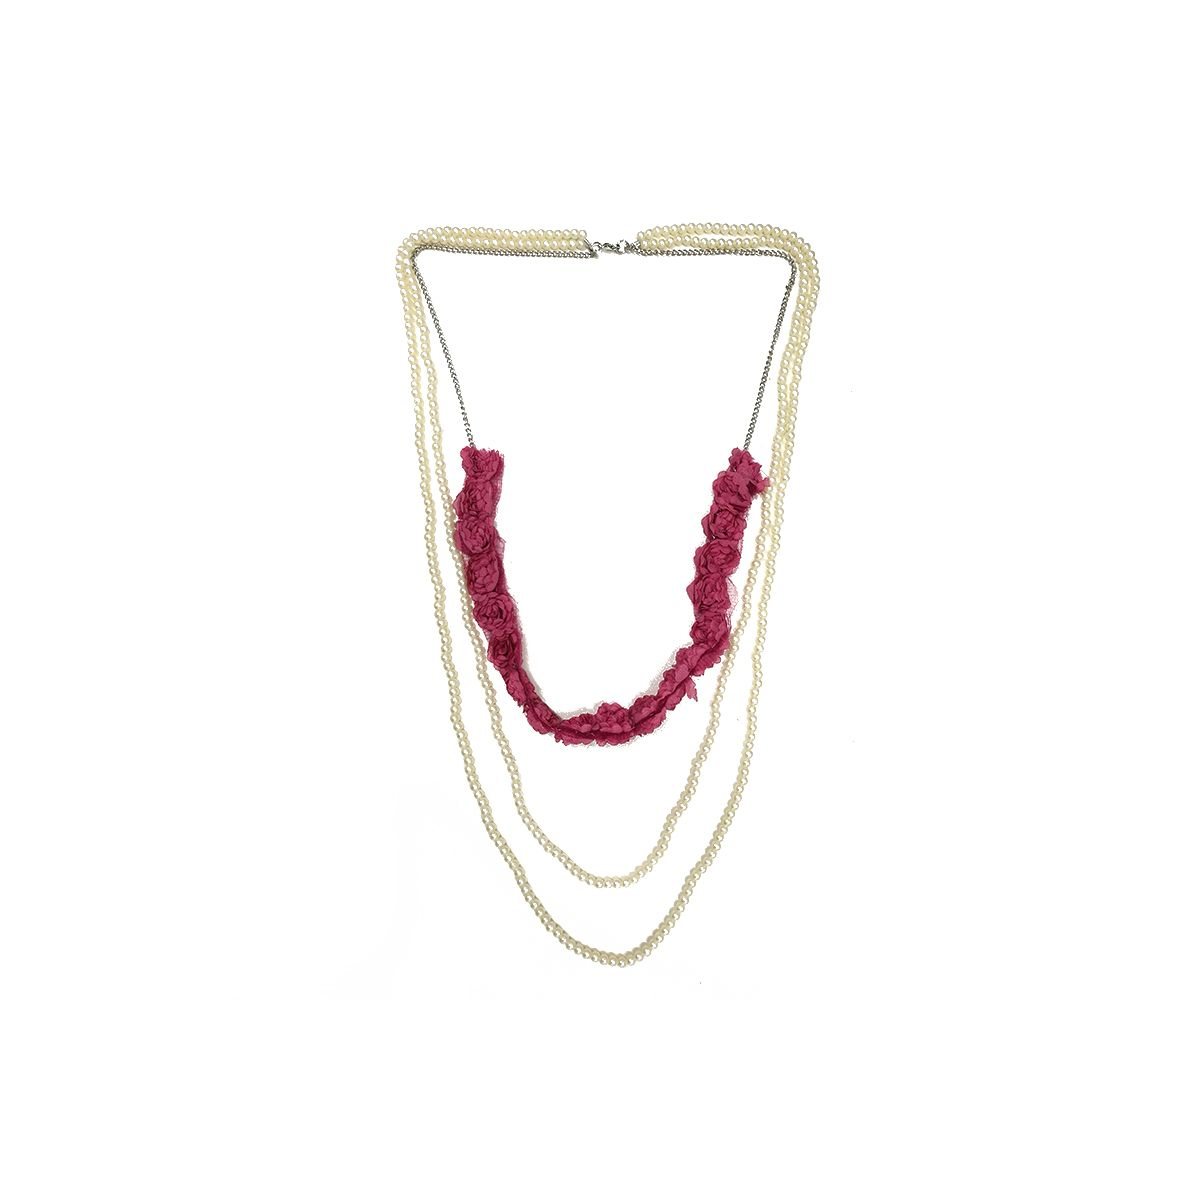 Pearl Triple Chain Long Necklace - Pink (OLD110132PK)